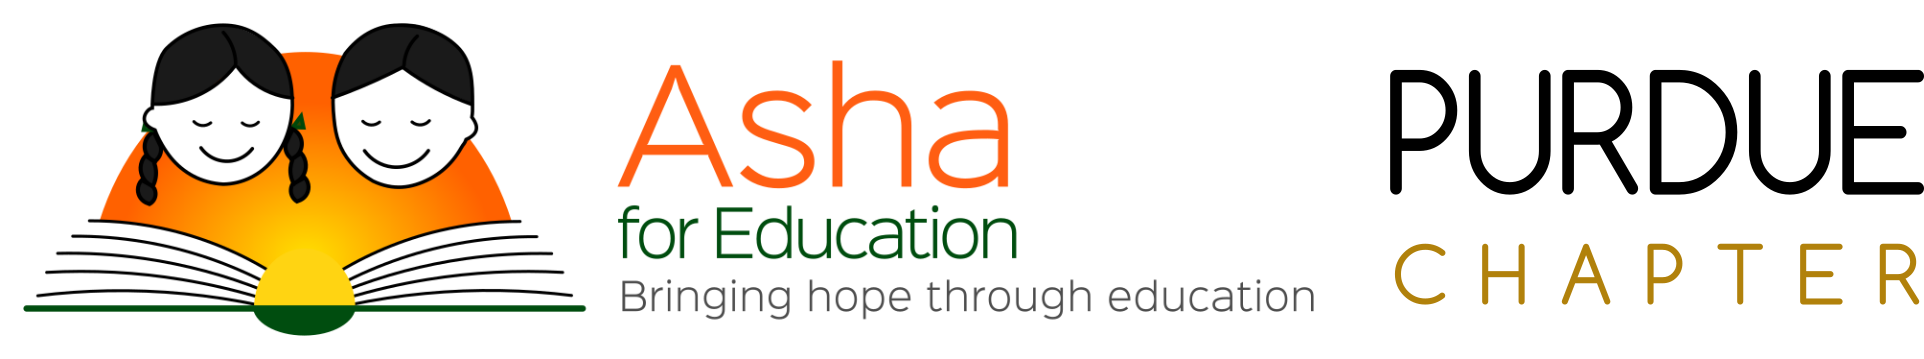 The Purdue chapter of Asha for Education